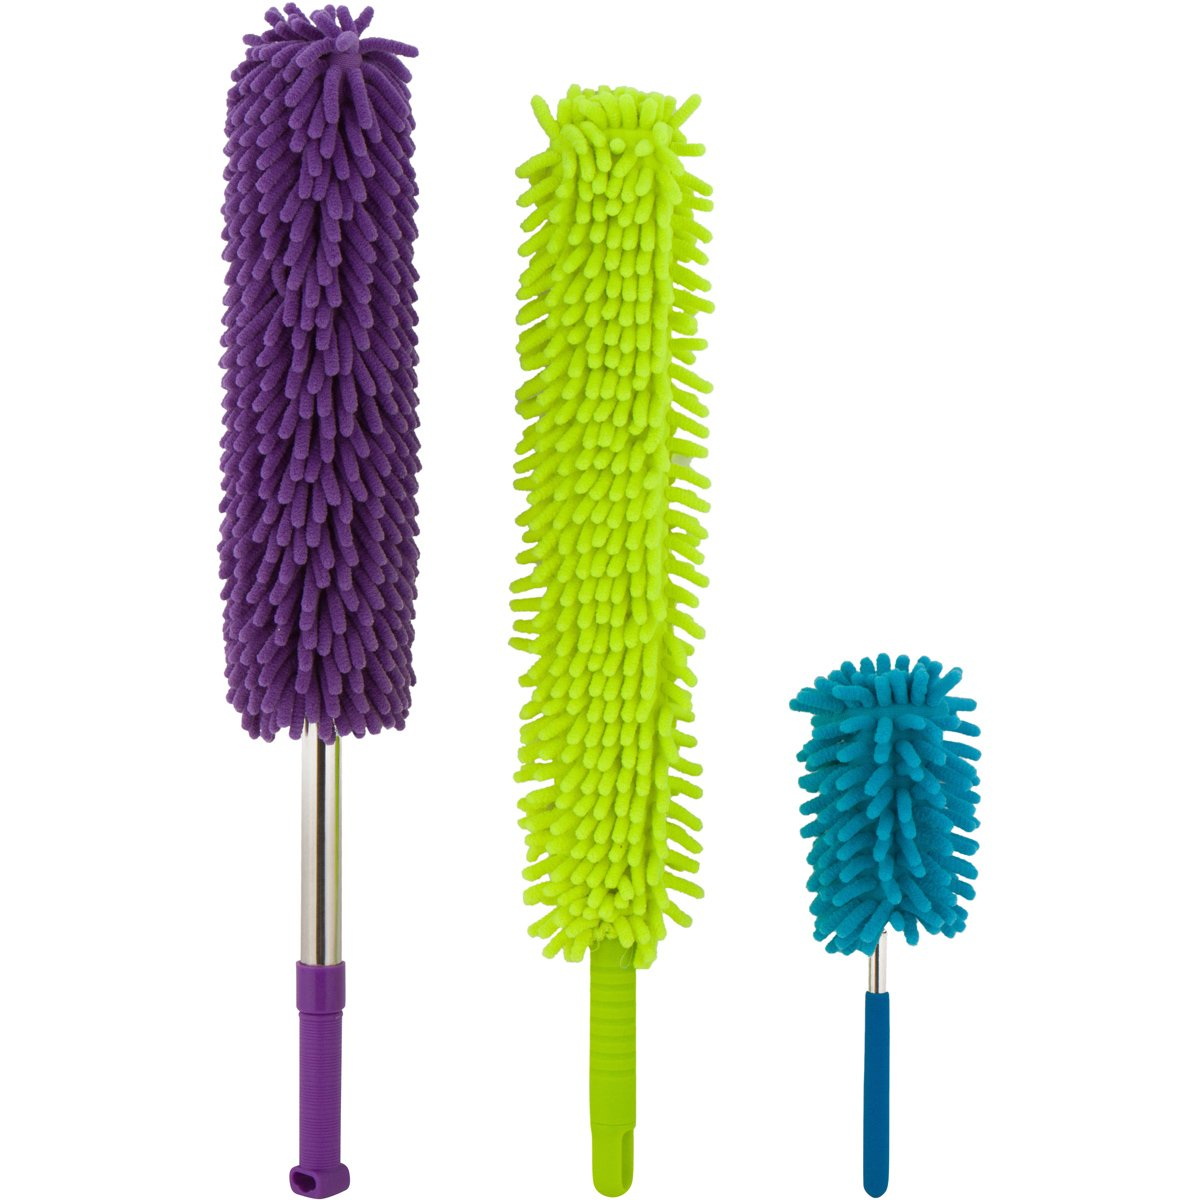 Microfiber Hand Dusters Set| 3-Pack| 1x Telescopic/Extendable Ceiling Duster, 1x Bendable Duster & 1x Mini Telescopic Duster For Car Use| Heart & Abode House, Kitchen & Automotive Cleaning Supplies Anastasia Doyle 6640105